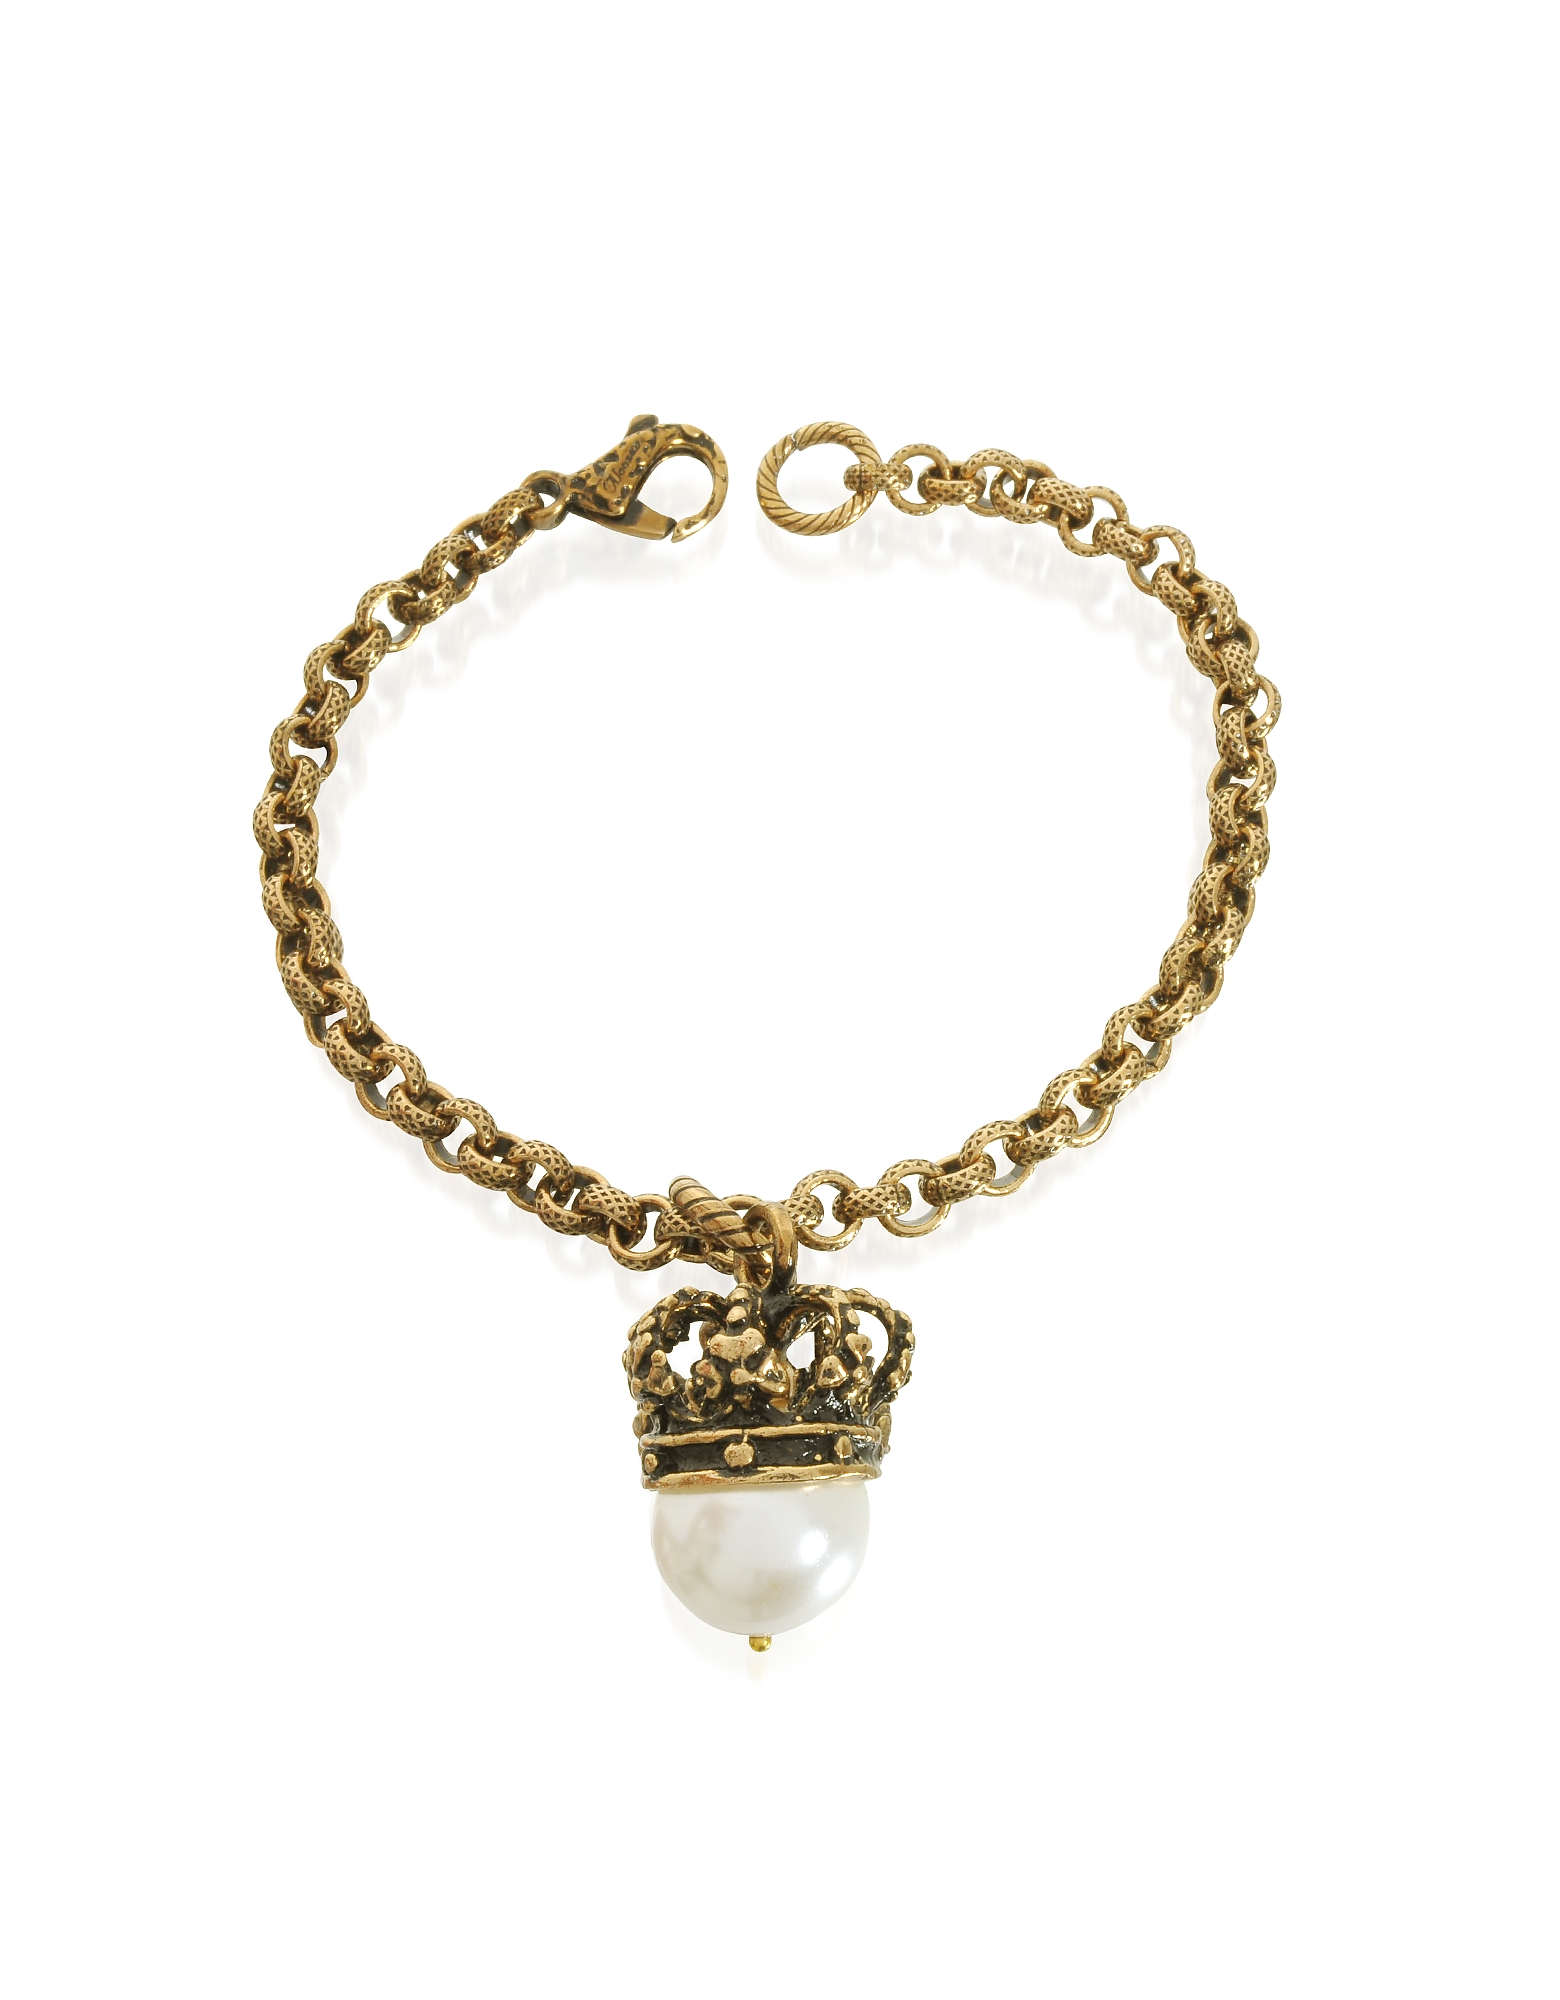 Alcozer & J Designer Bracelets, Crown and Pearl Bracelet